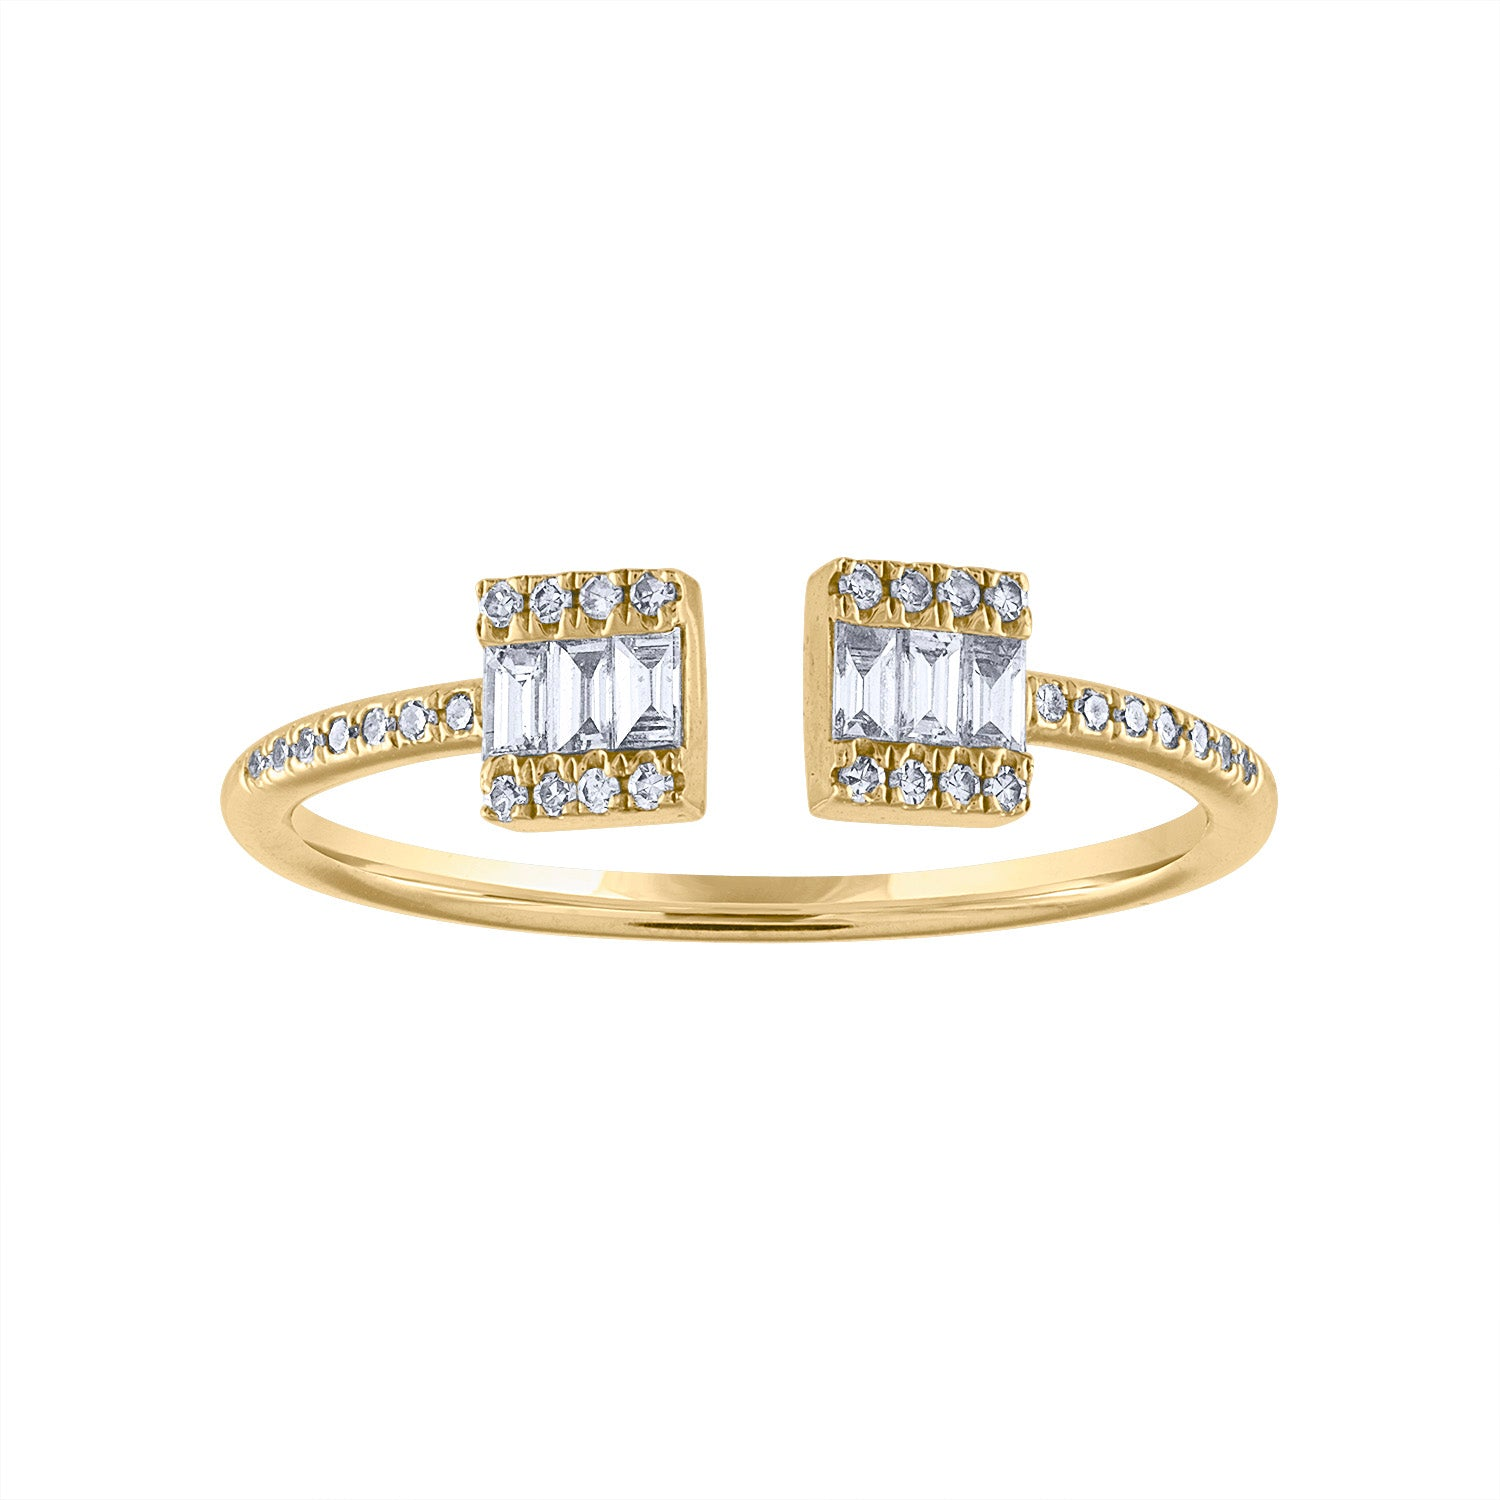 14KT GOLD DIAMOND BAGUETTE SQUARE CUFF RING